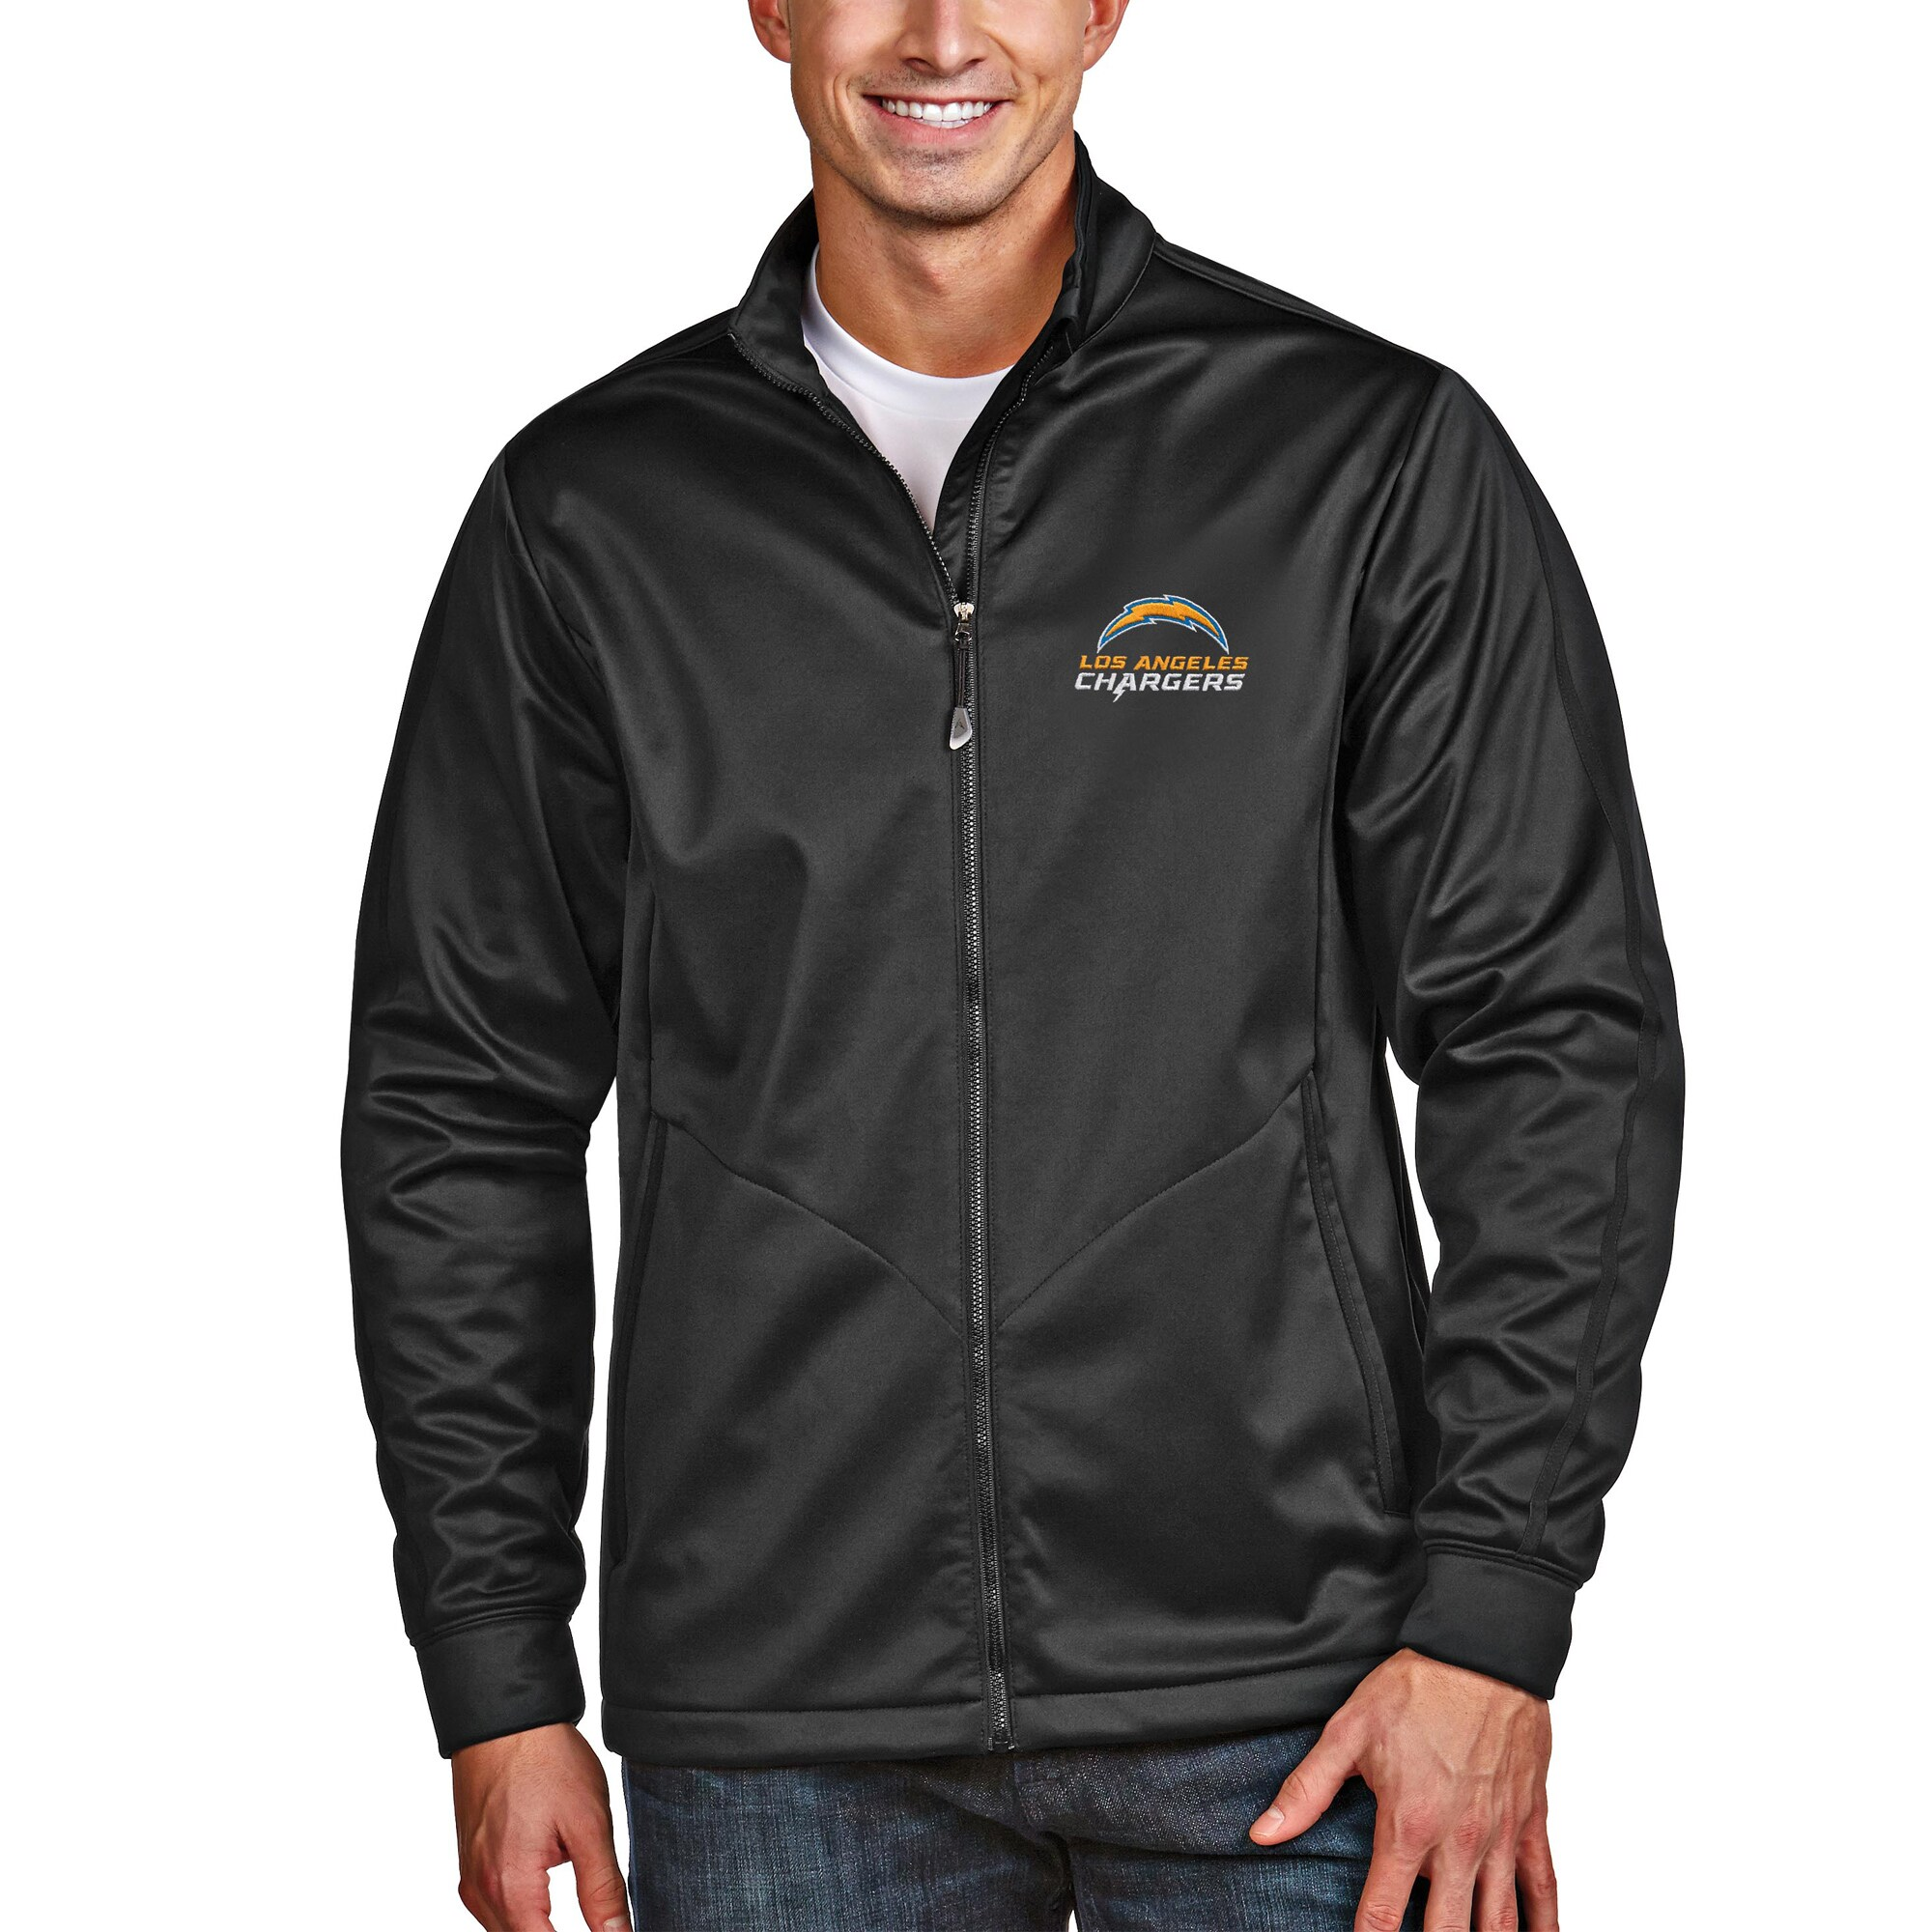 Los Angeles Chargers Antigua Full-Zip Golf Jacket - Black